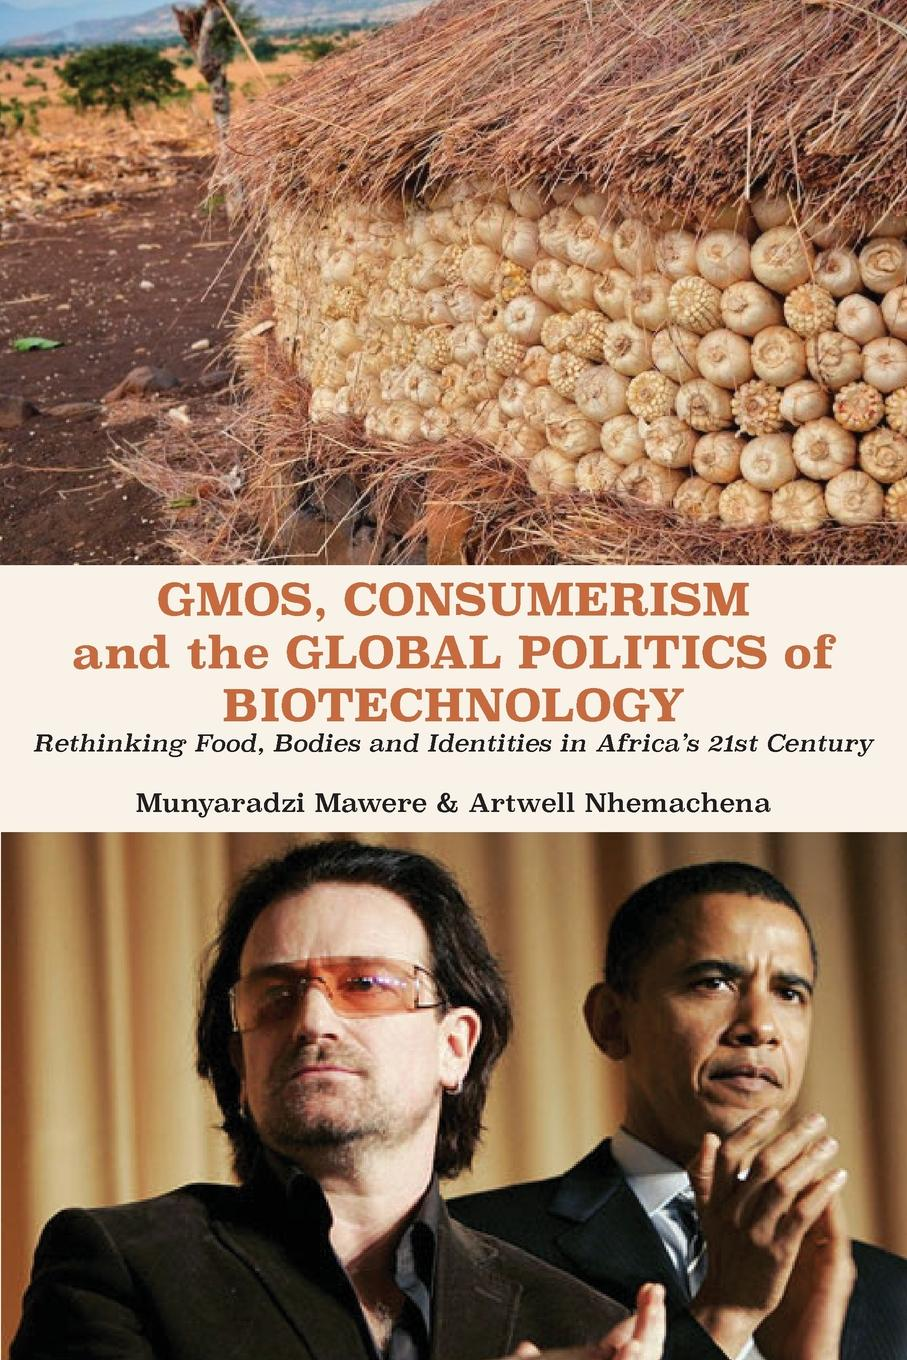 GMOs, Consumerism and the Global Politics of Biotechnology. Rethinking Food, Bodies and Identities in Africa.s 21st Century недорого